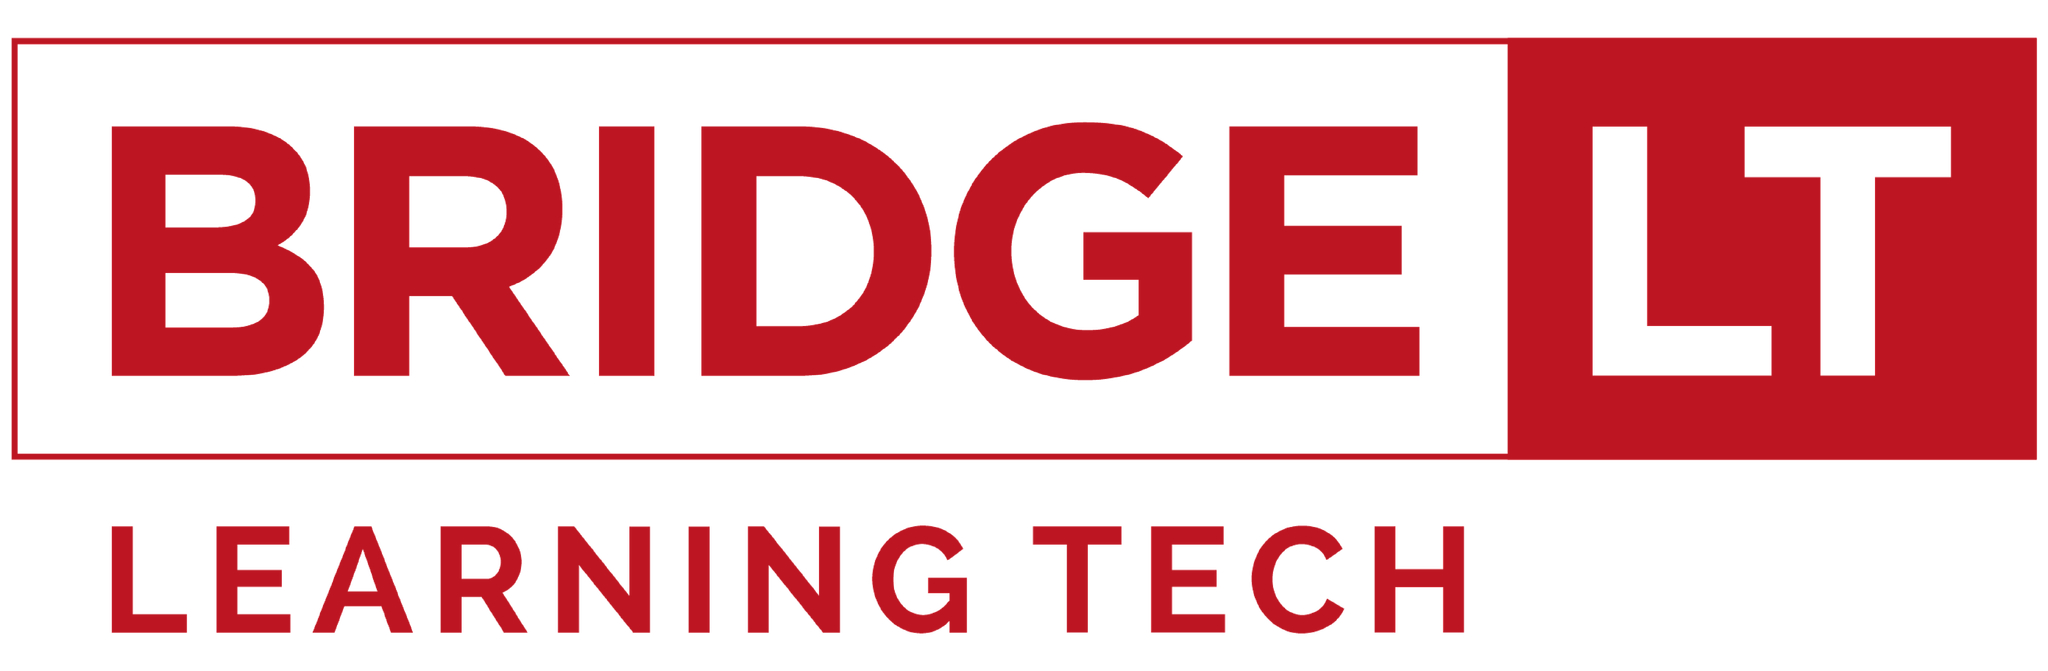 Bridge Learning Technologies